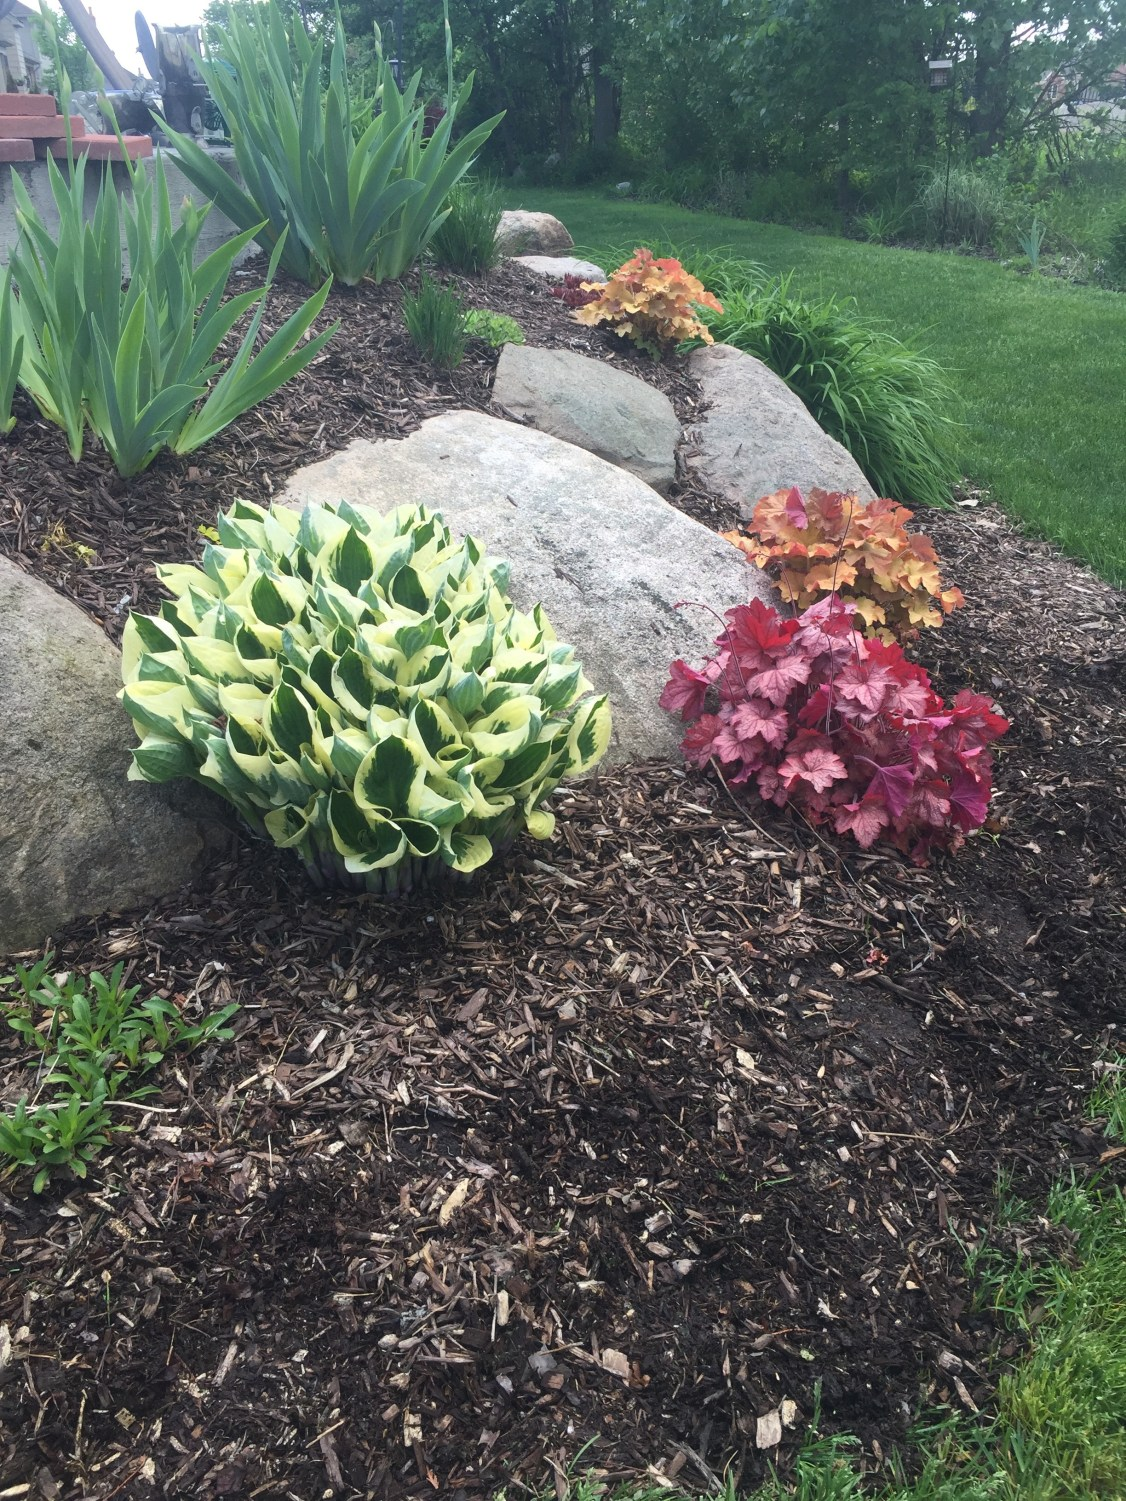 mulched garden bed with large rocks, hosta plant, coral bells and other plants